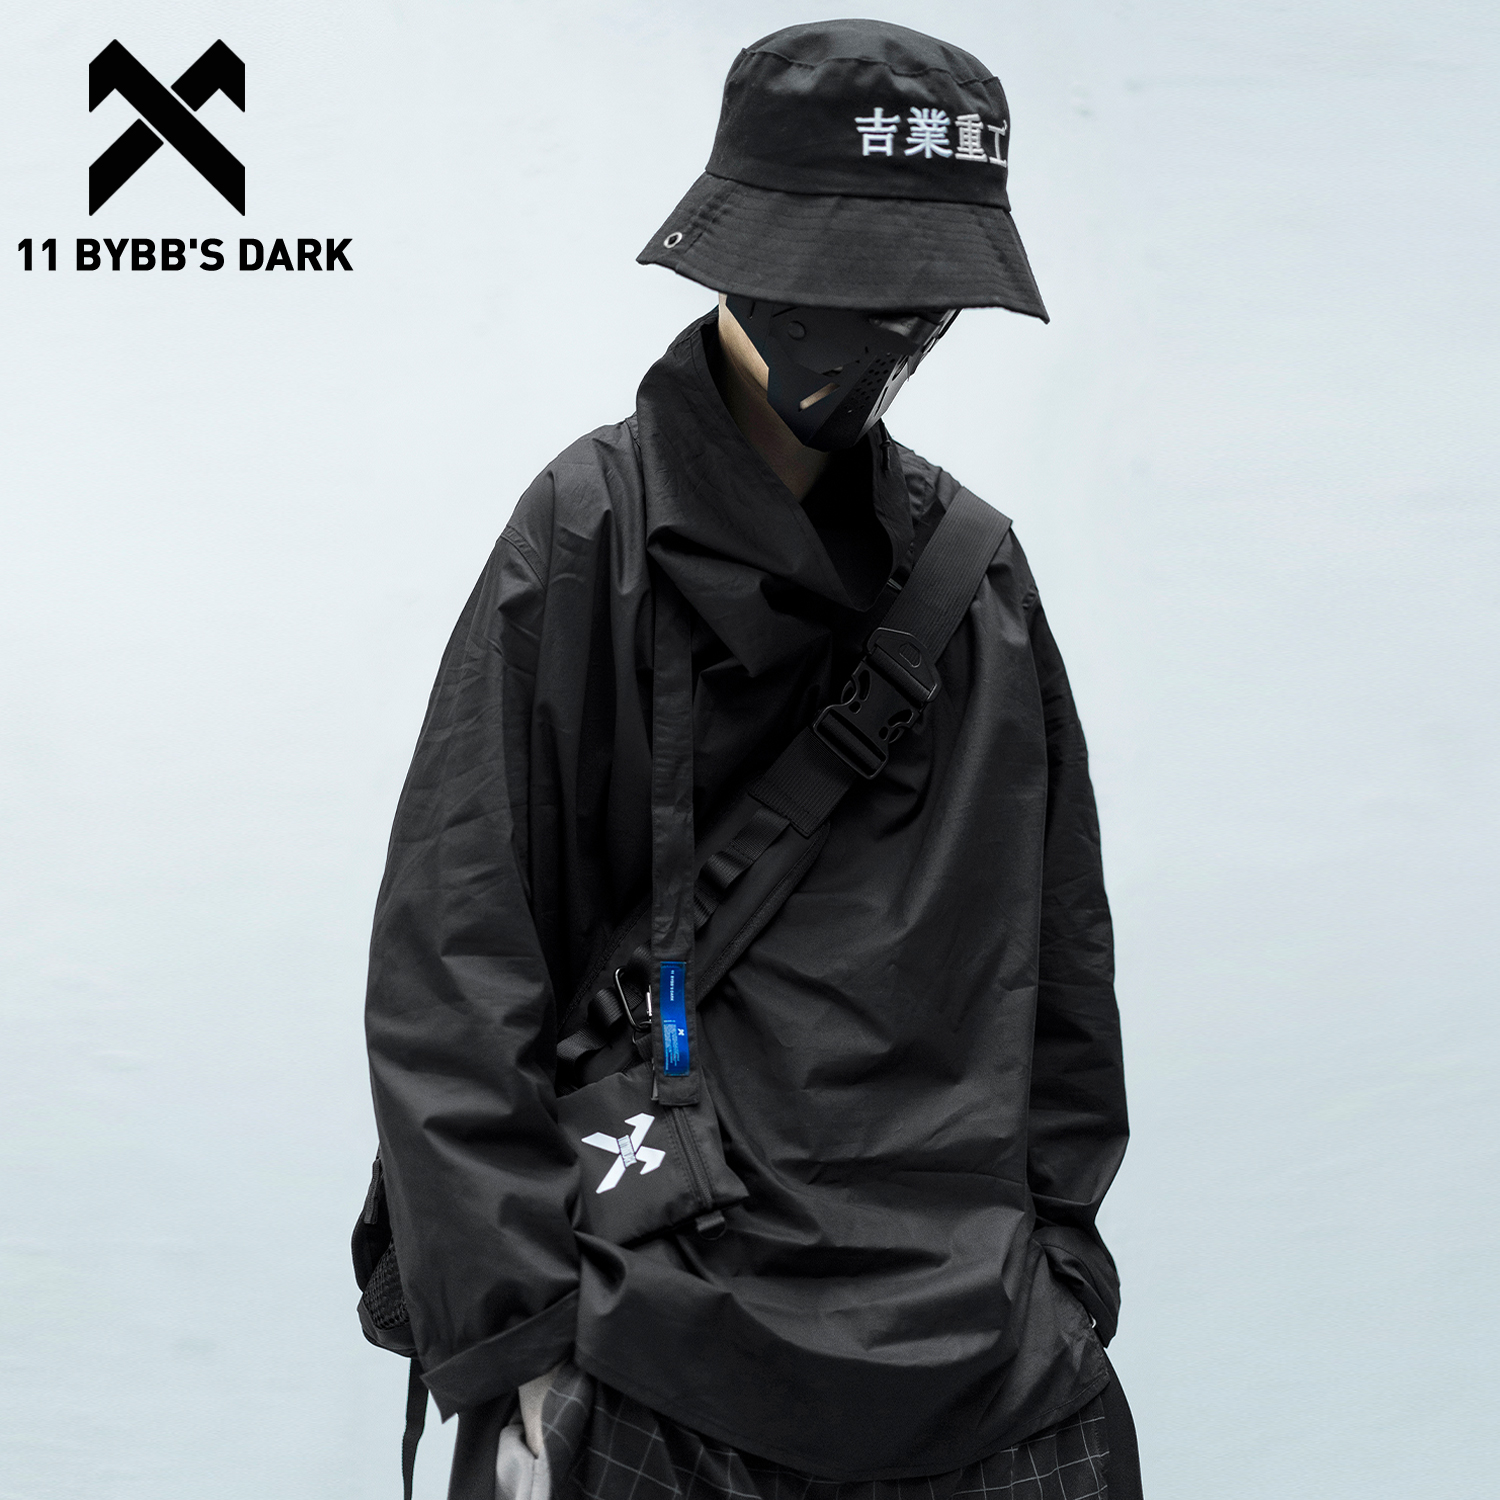 11 BYBB'S DARK Solid Dark Pile Pile Collar Long Sleeve 2020 Hip Hop Streetwear Letter Embroidery Pullover Techwear Fashion Tops